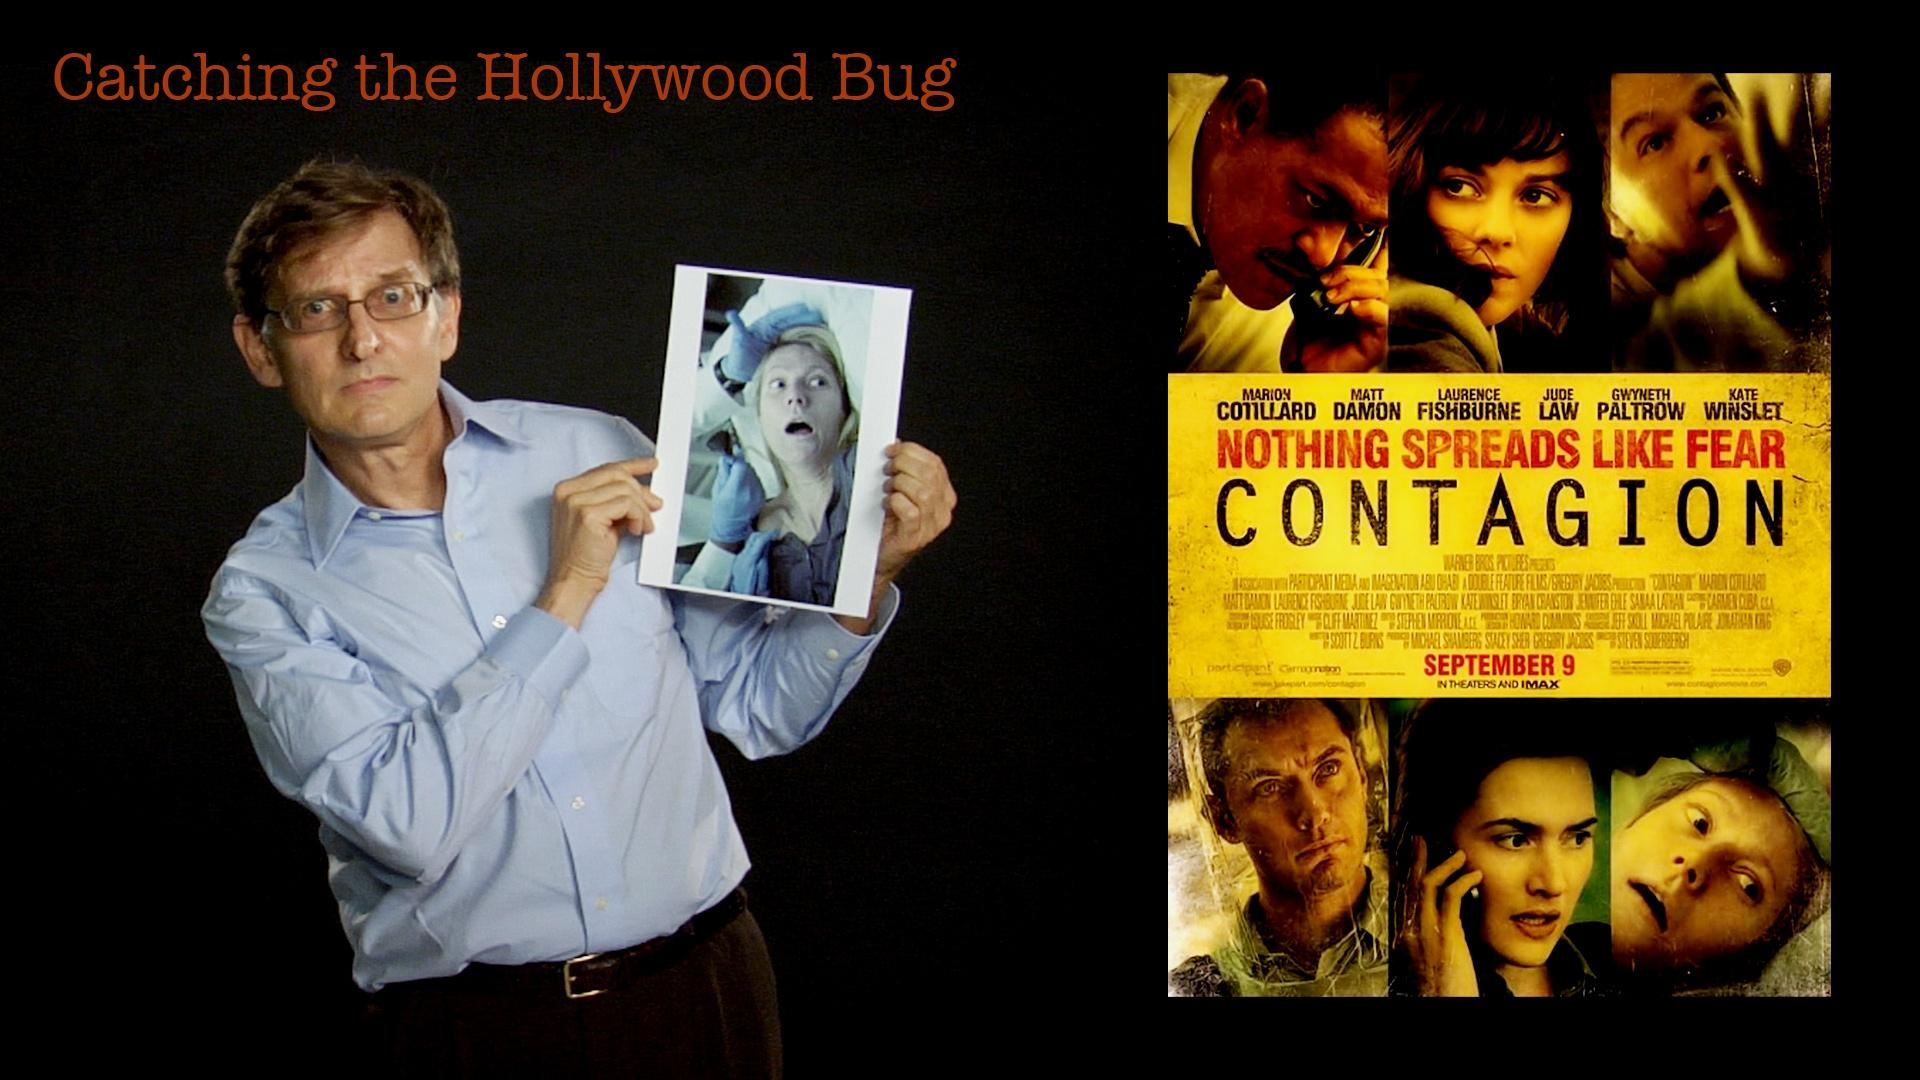 Ian Lipkin: Catching the Hollywood Bug image